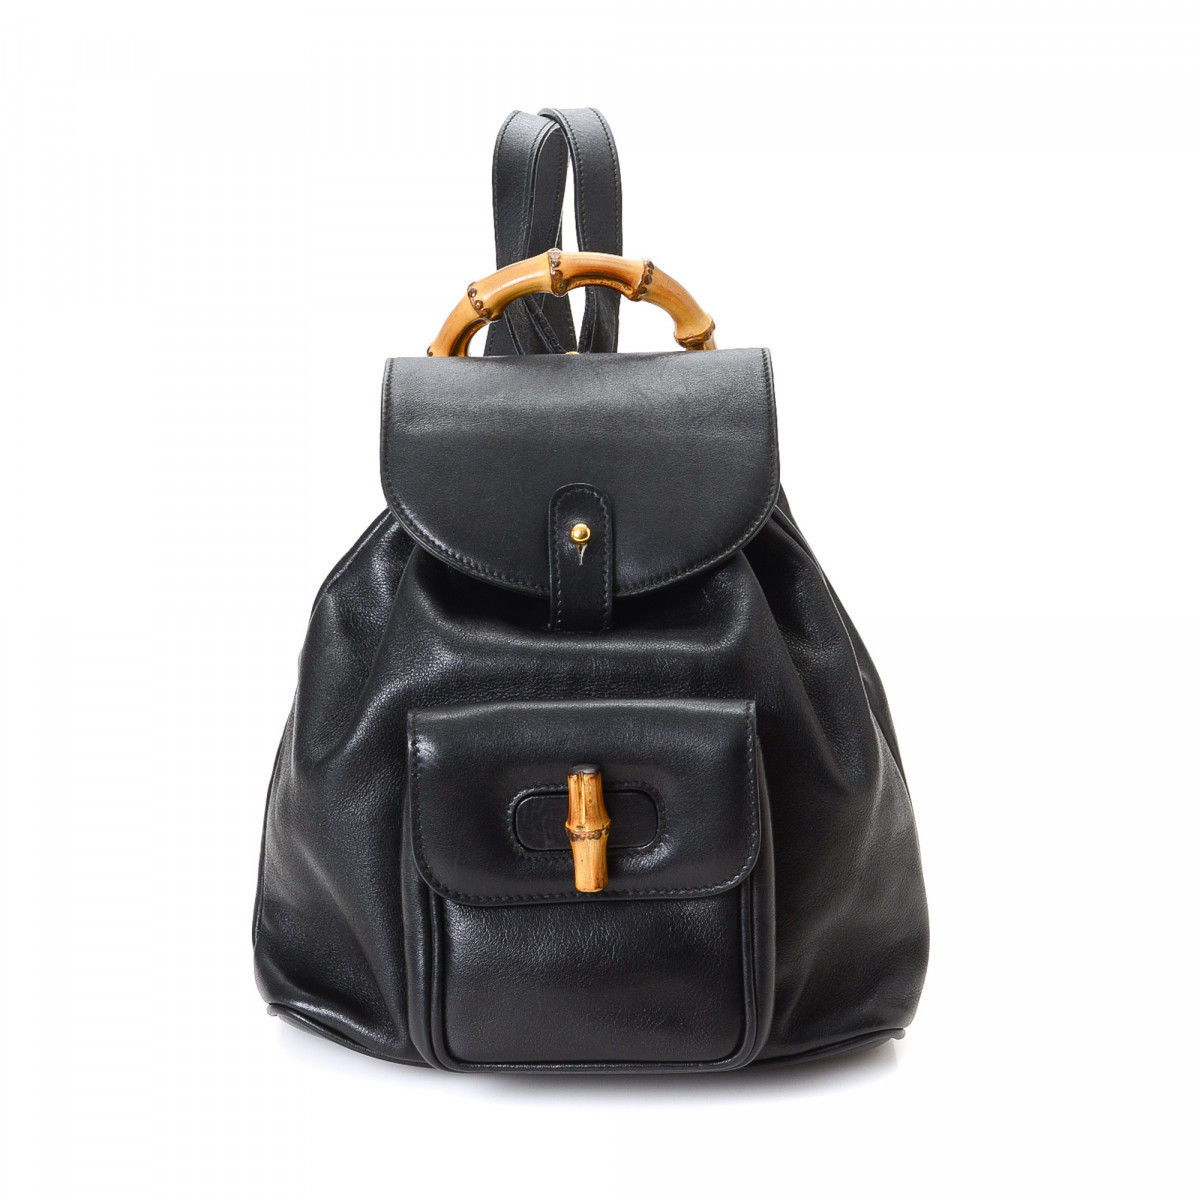 a9704ba0a2a Gucci Bamboo Backpack Leather - LXRandCo - Pre-Owned Luxury Vintage